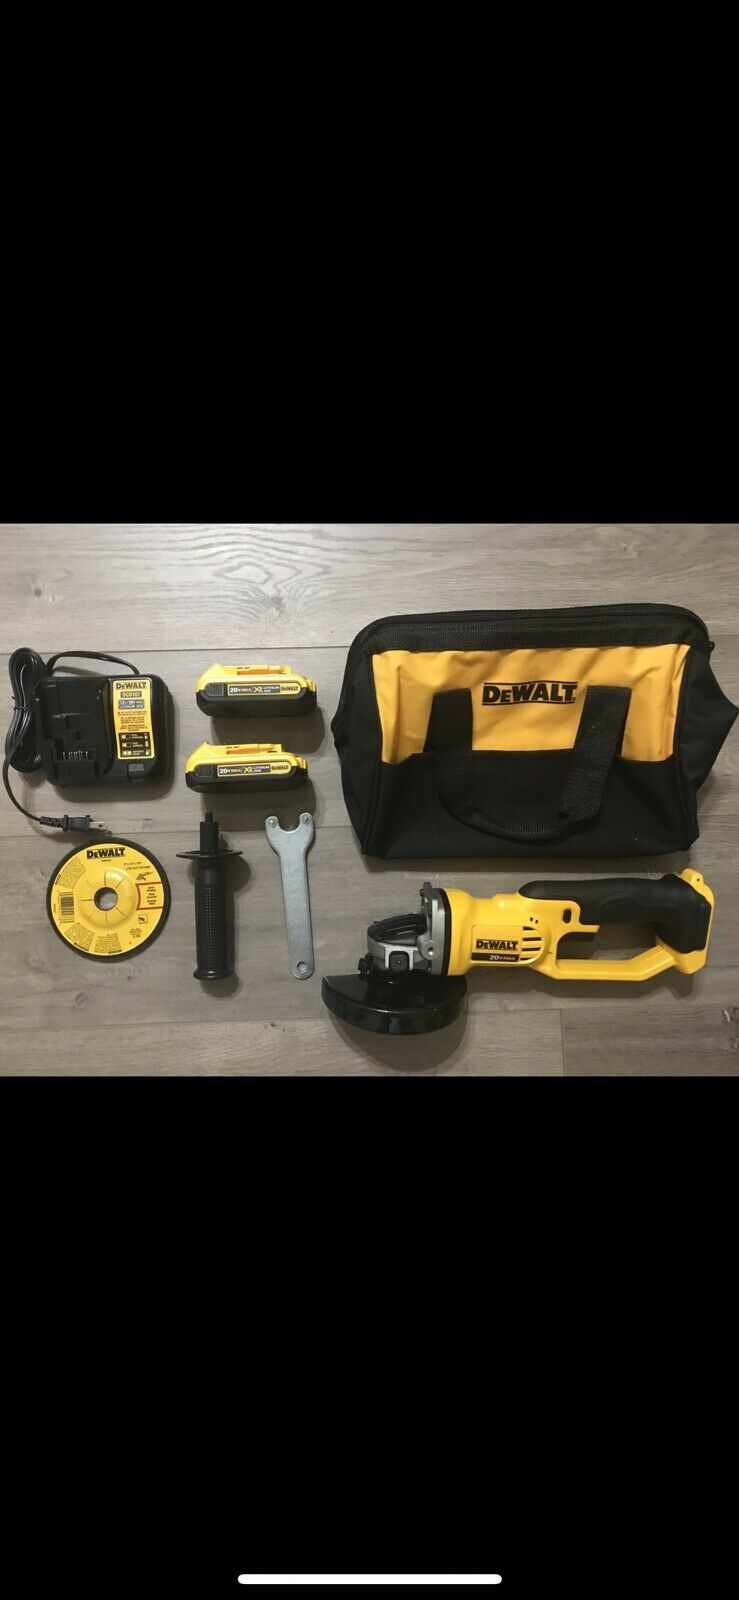 New Dewalt 20v Grinder DCG412 Kit (2)2.0Ah Batteries Charger Tool Bag